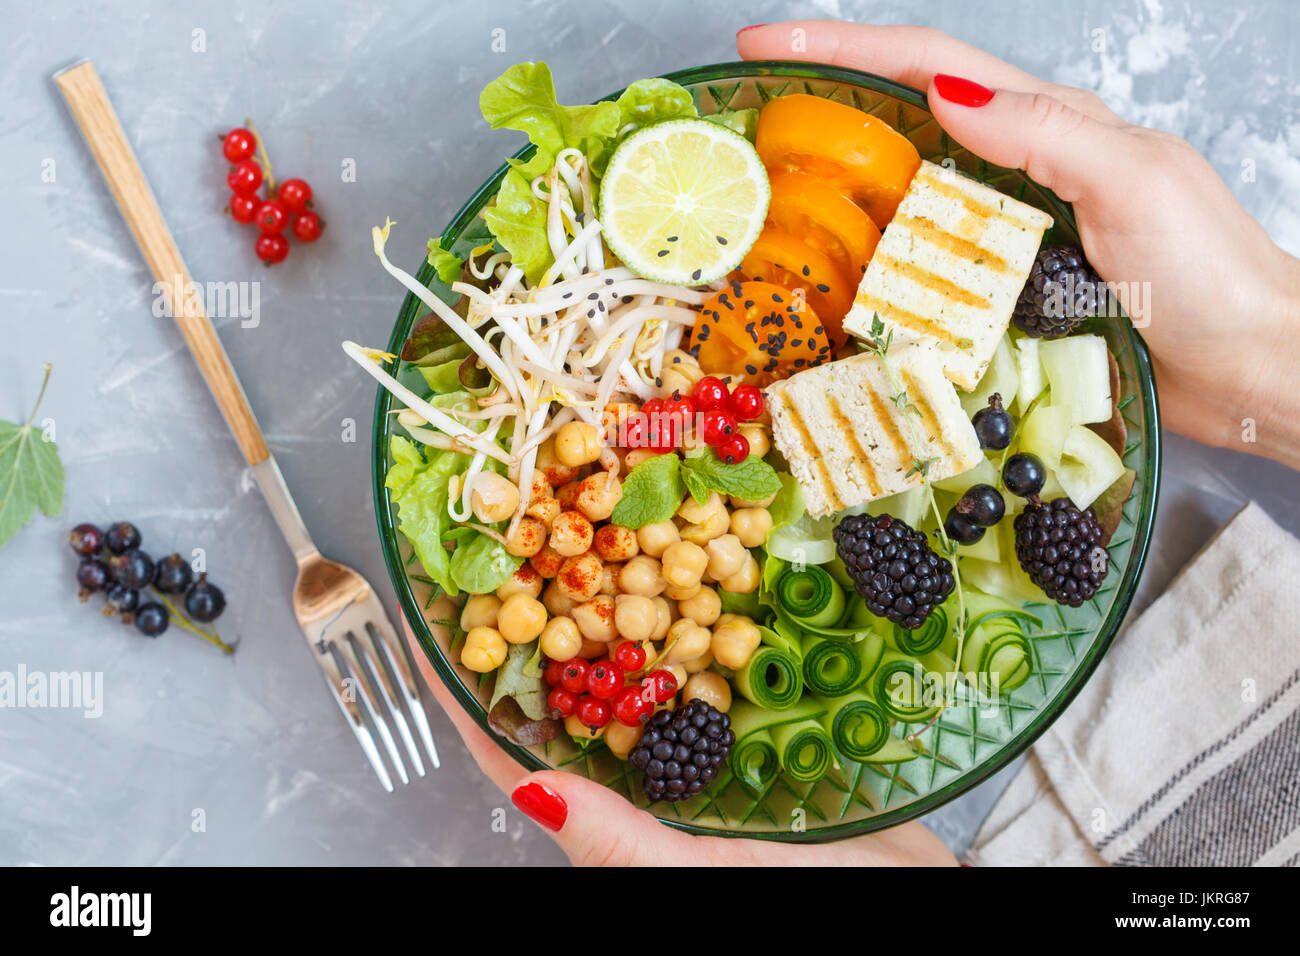 Healthy vegan lunch - buddha bowl of vegetables, chickpeas and tofu. - Stock Image